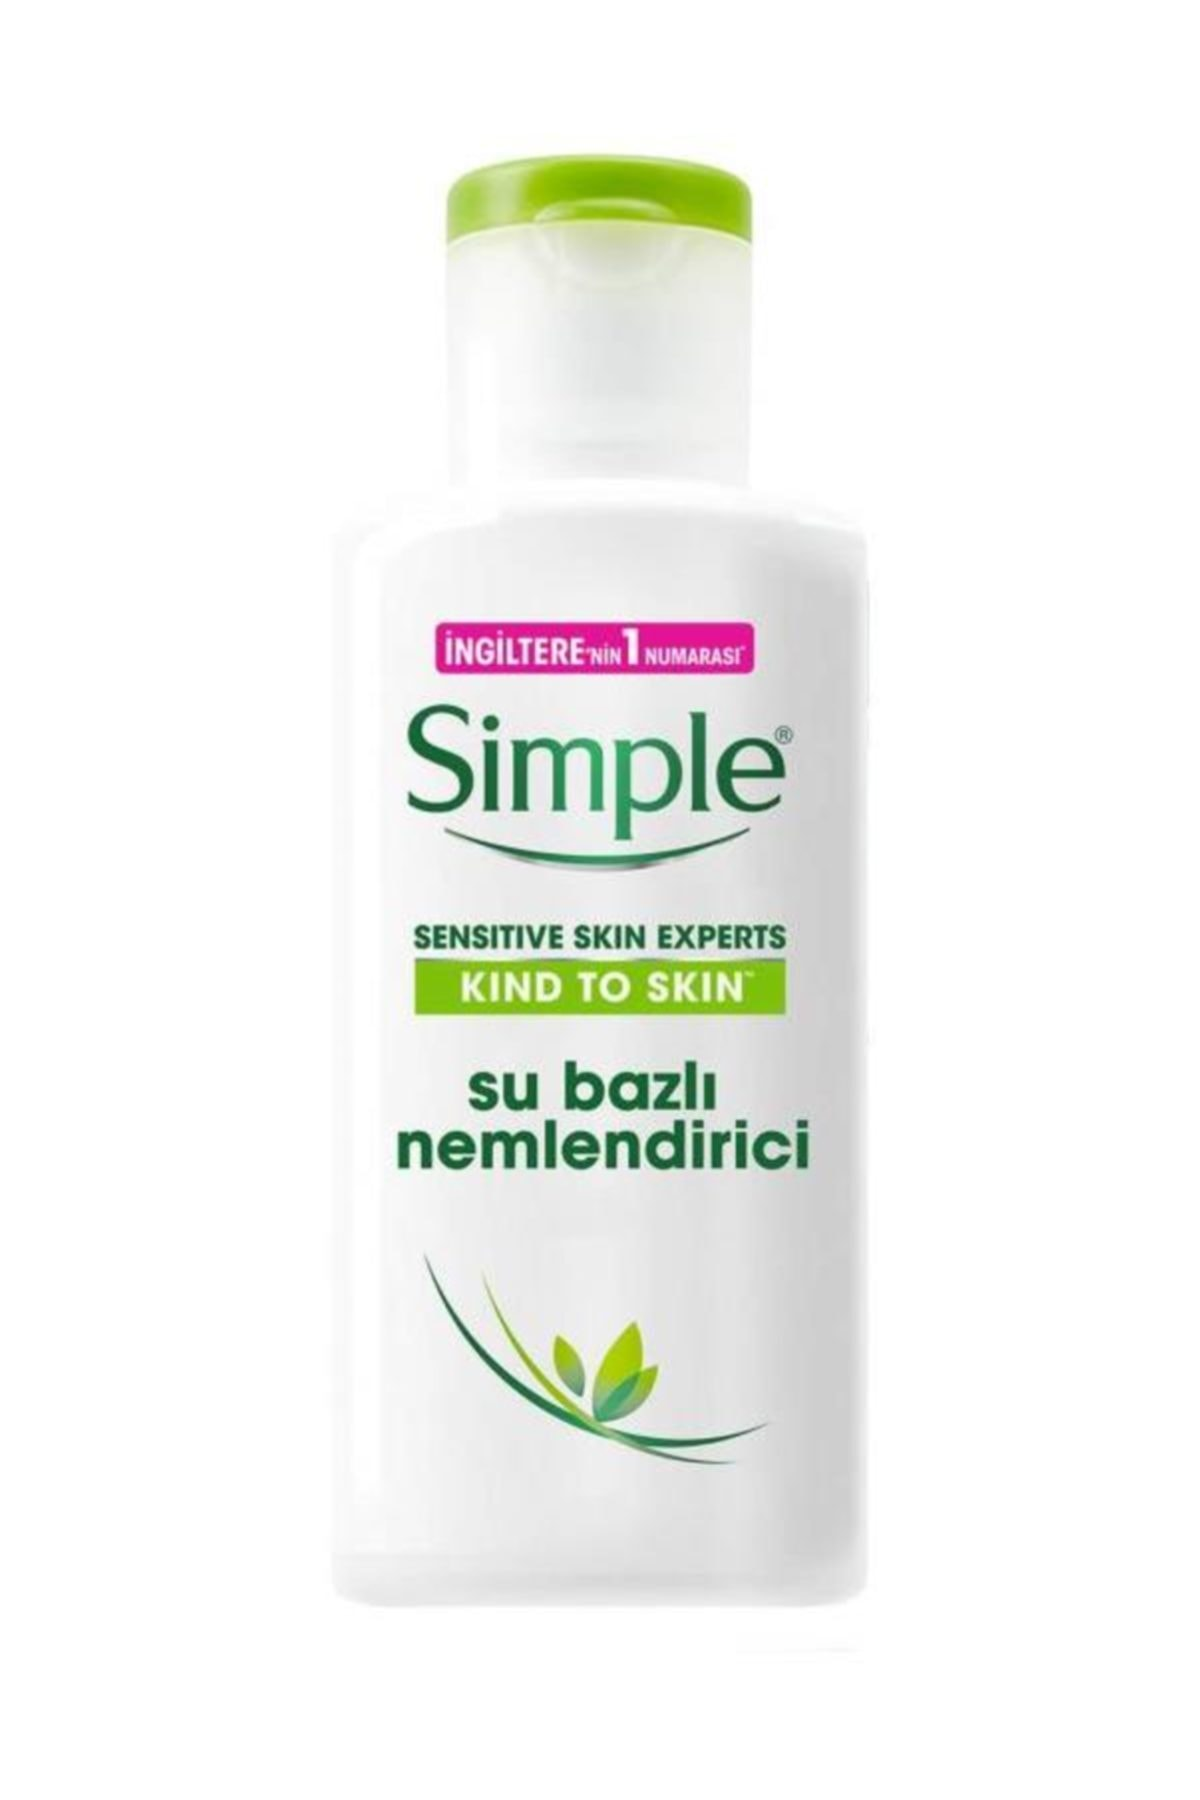 Simple Sımple Sensitive Skin Experts Kind To Skin Su Bazlı Nemlendirici 125 Ml 1